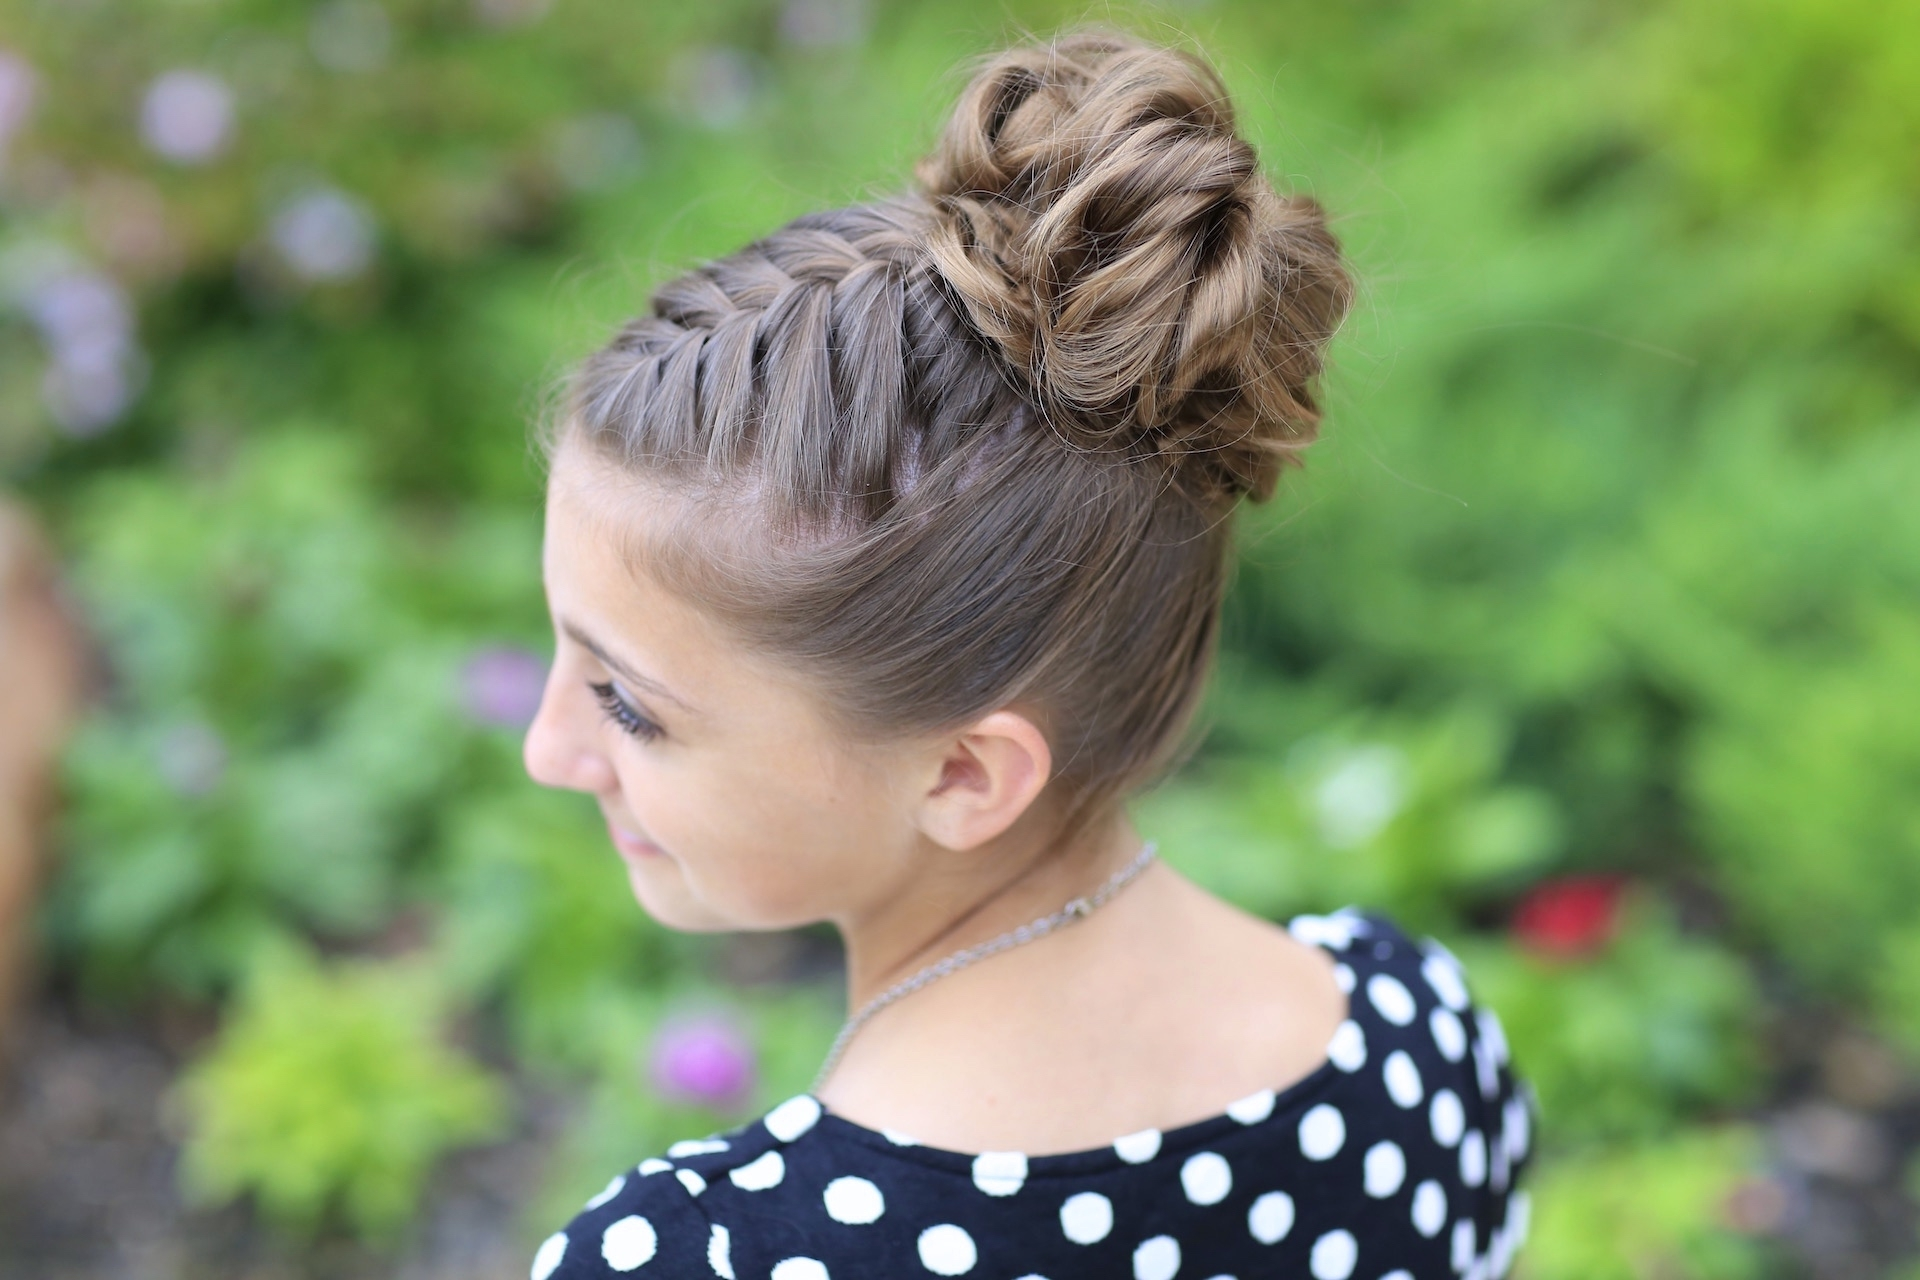 Cute Girls Hairstyles For Well Known Double Braids Updo Hairstyles (View 3 of 15)